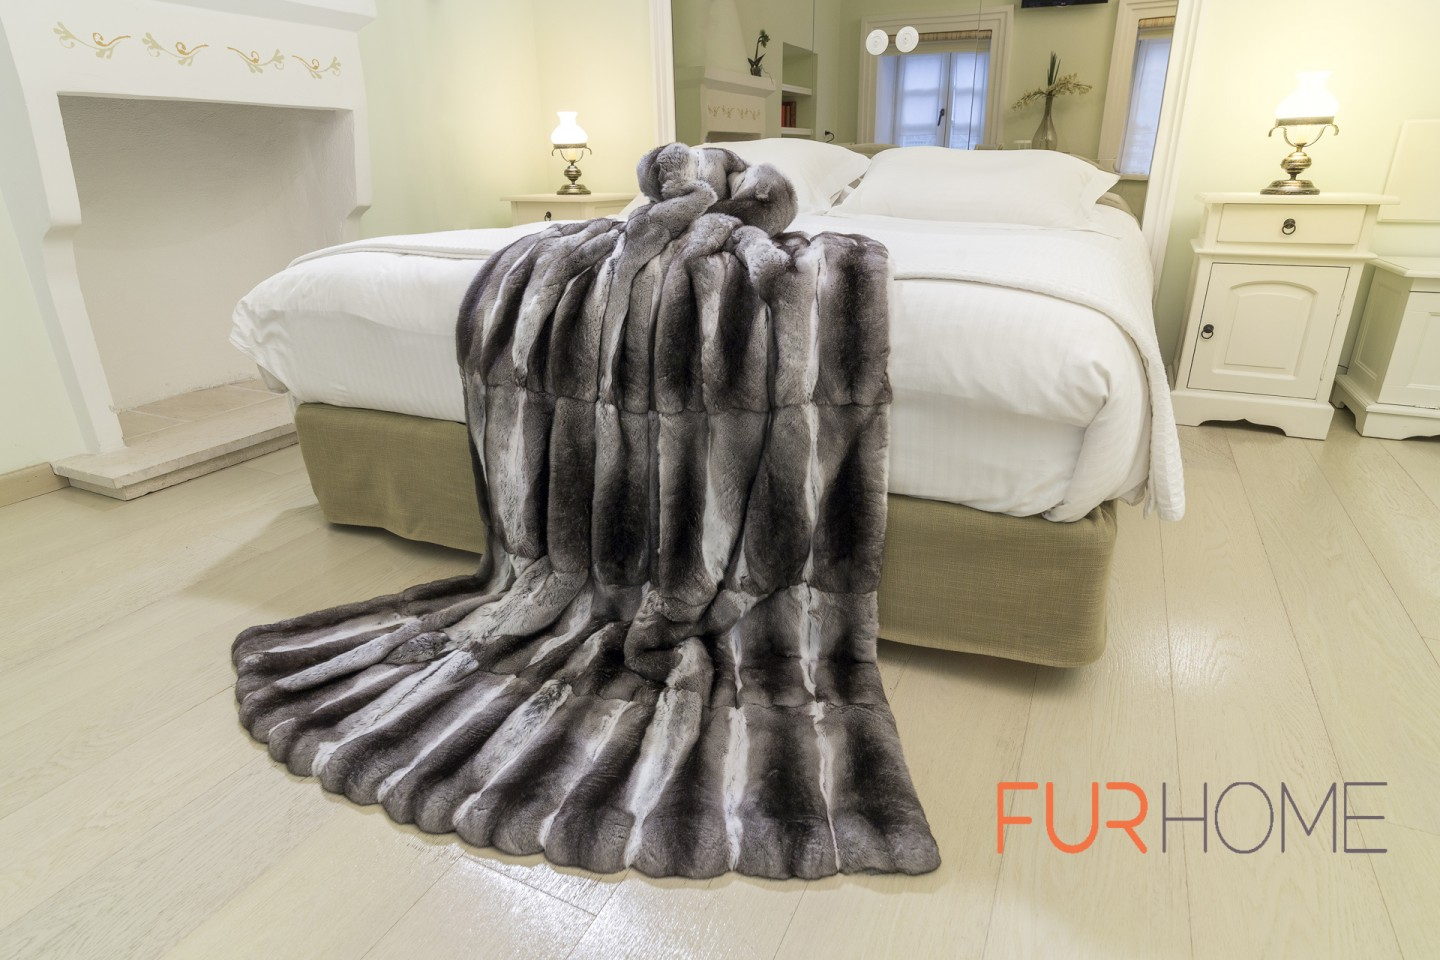 Chinchilla Real Fur Bedspread Bed Cover Throw Fur Home